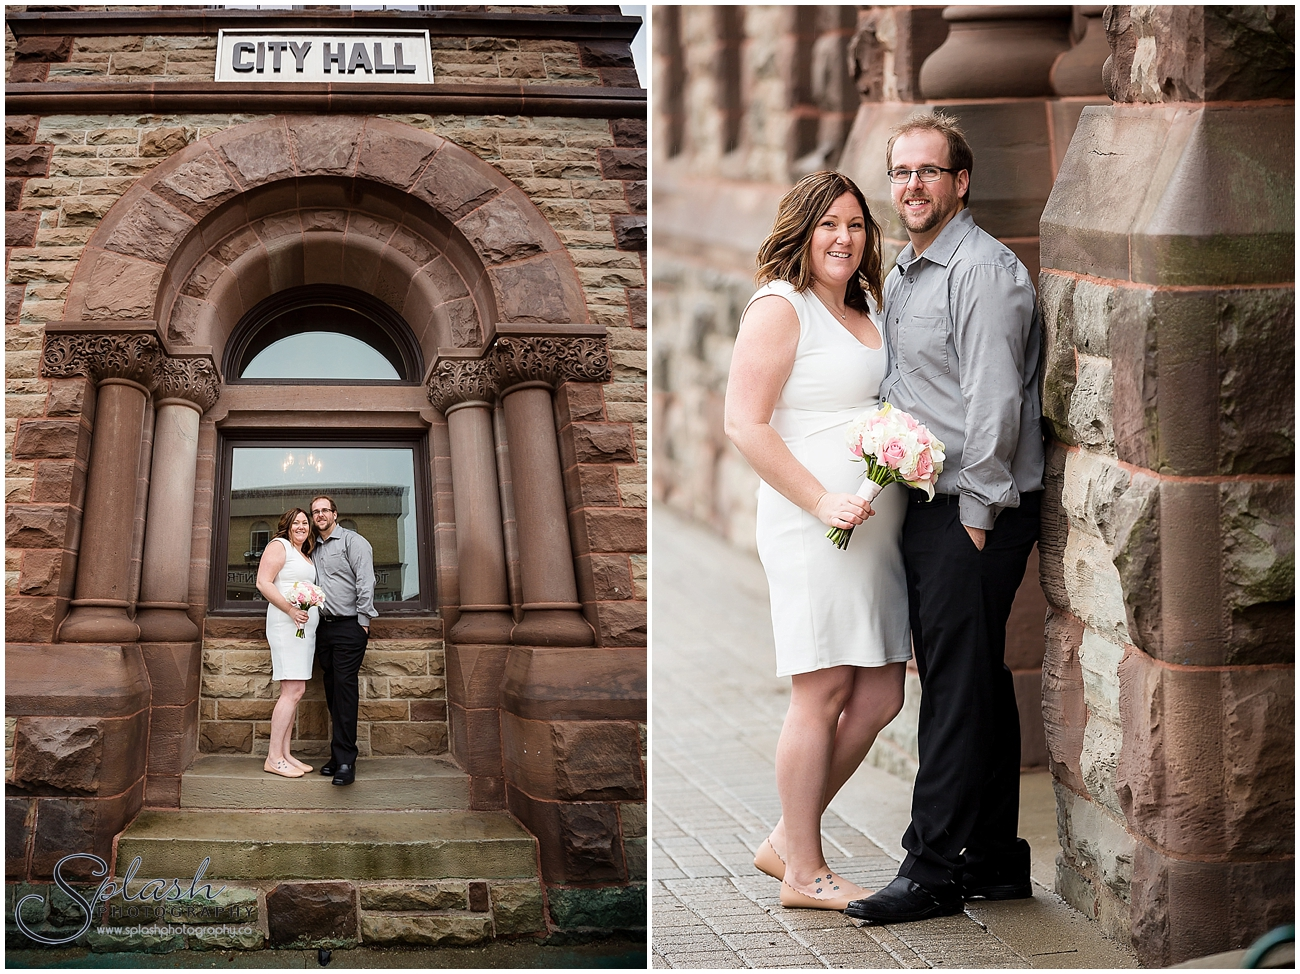 Jenilee kyles city hall wedding woodstock on march 31 2017 city hall in woodstock we were able o take some additional photos outside the beautiful building there as well it was such a pleasure to spend this junglespirit Choice Image